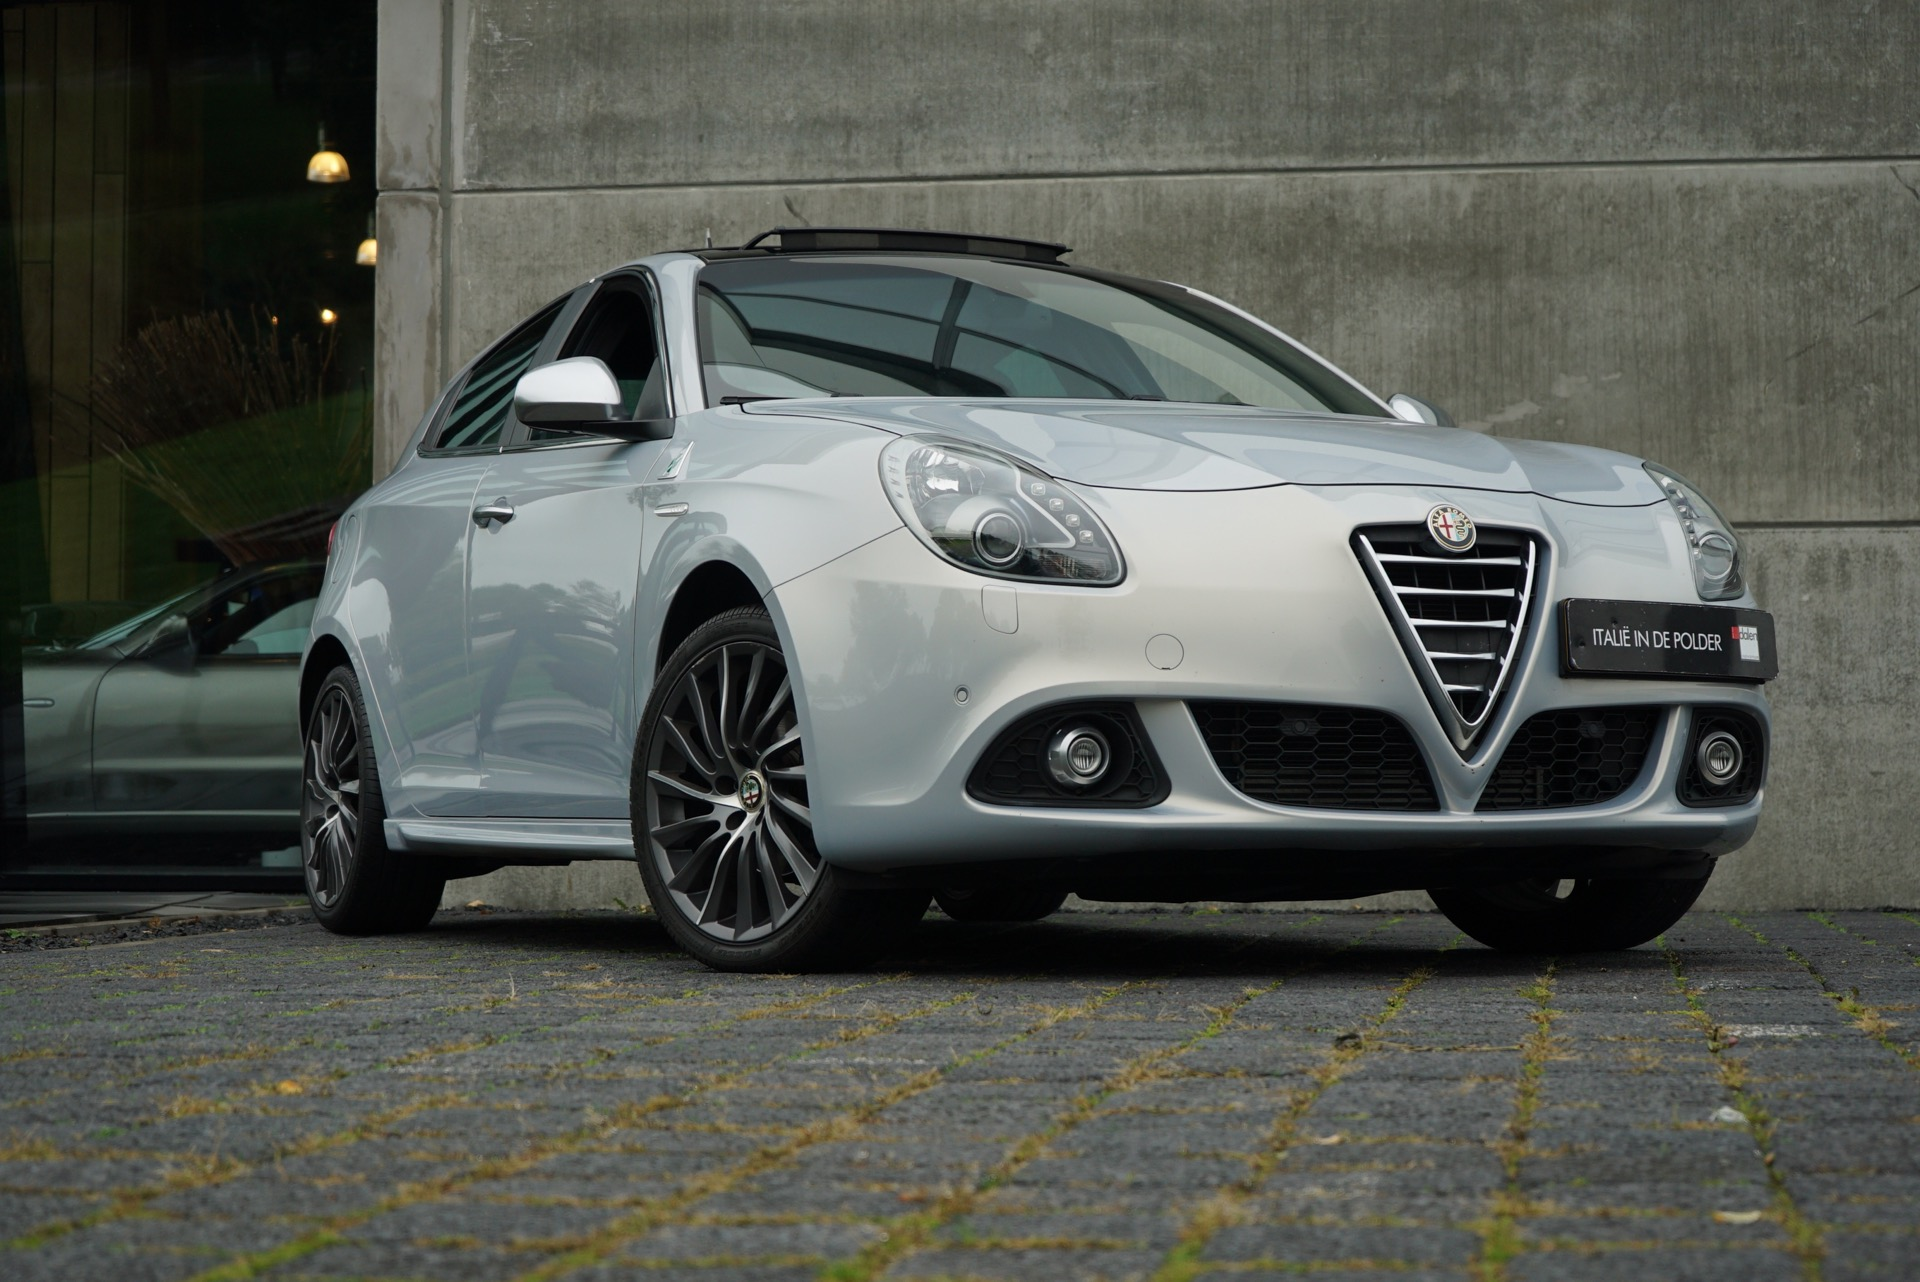 ALFA GIULIETTA 1.4 TURBO DISTINCTIVE SAVALI 150PK